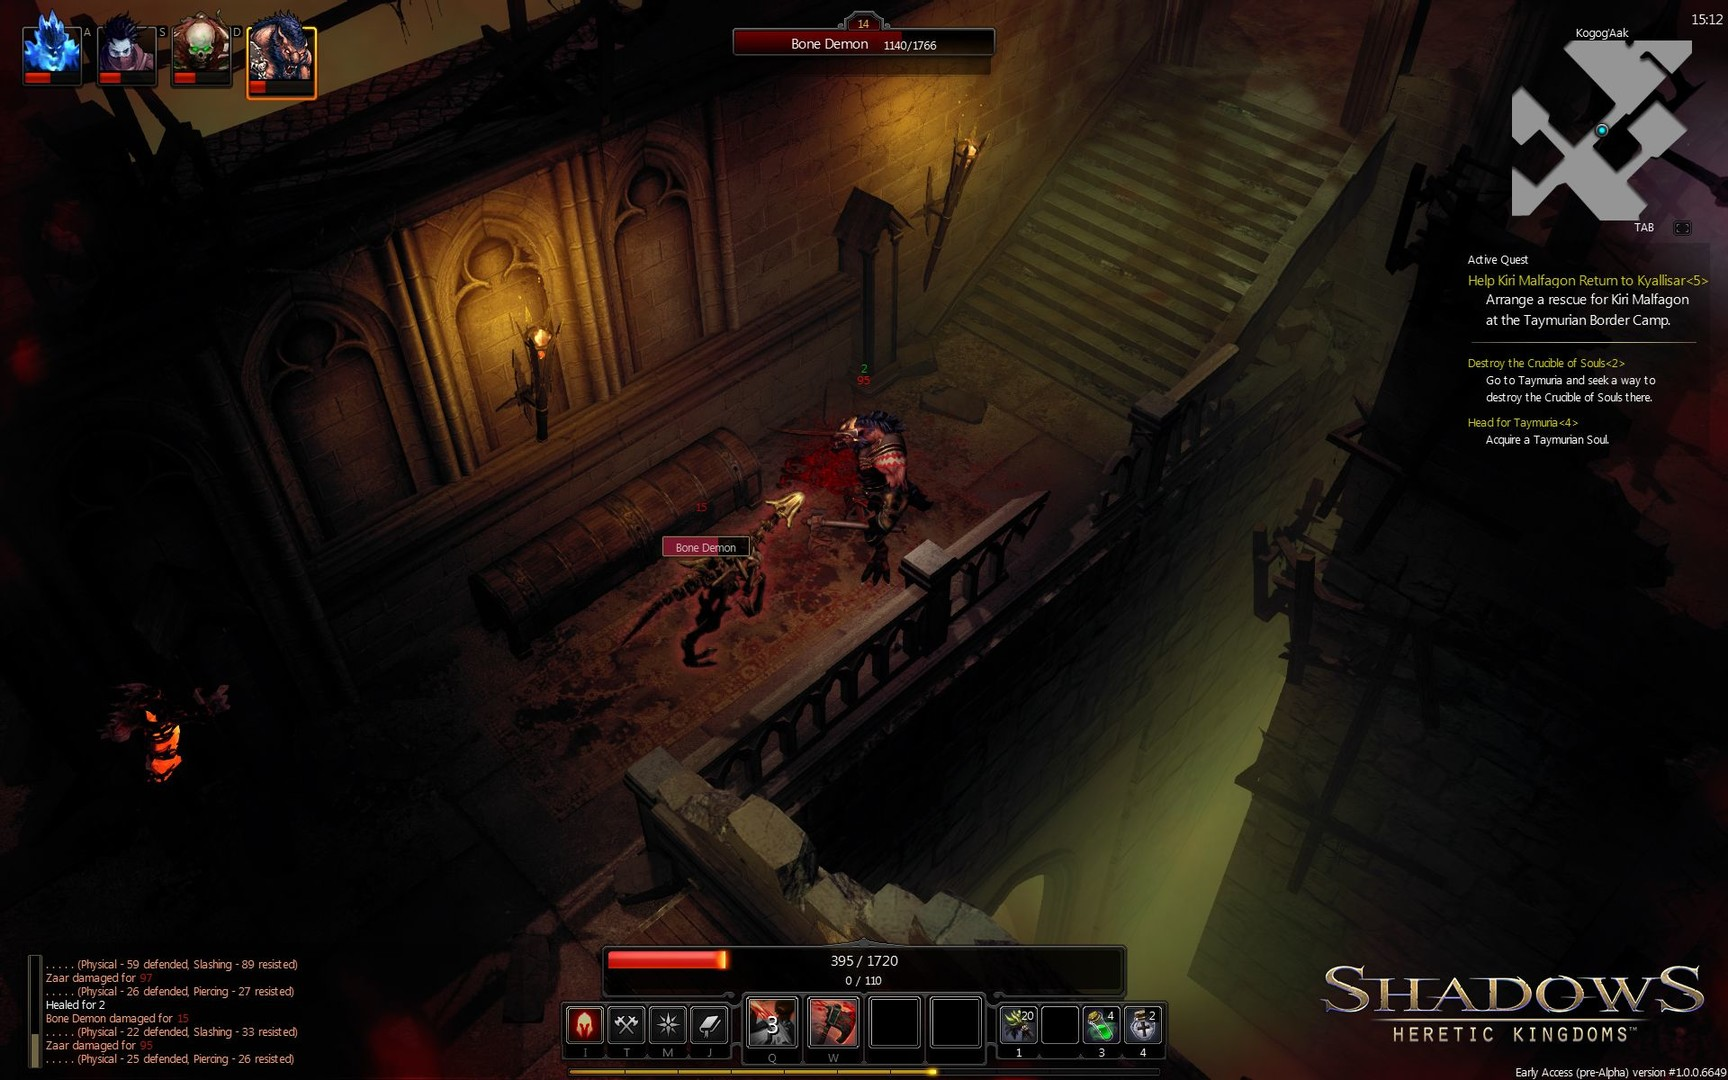 Shadows: heretic kingdoms download free gog pc games.